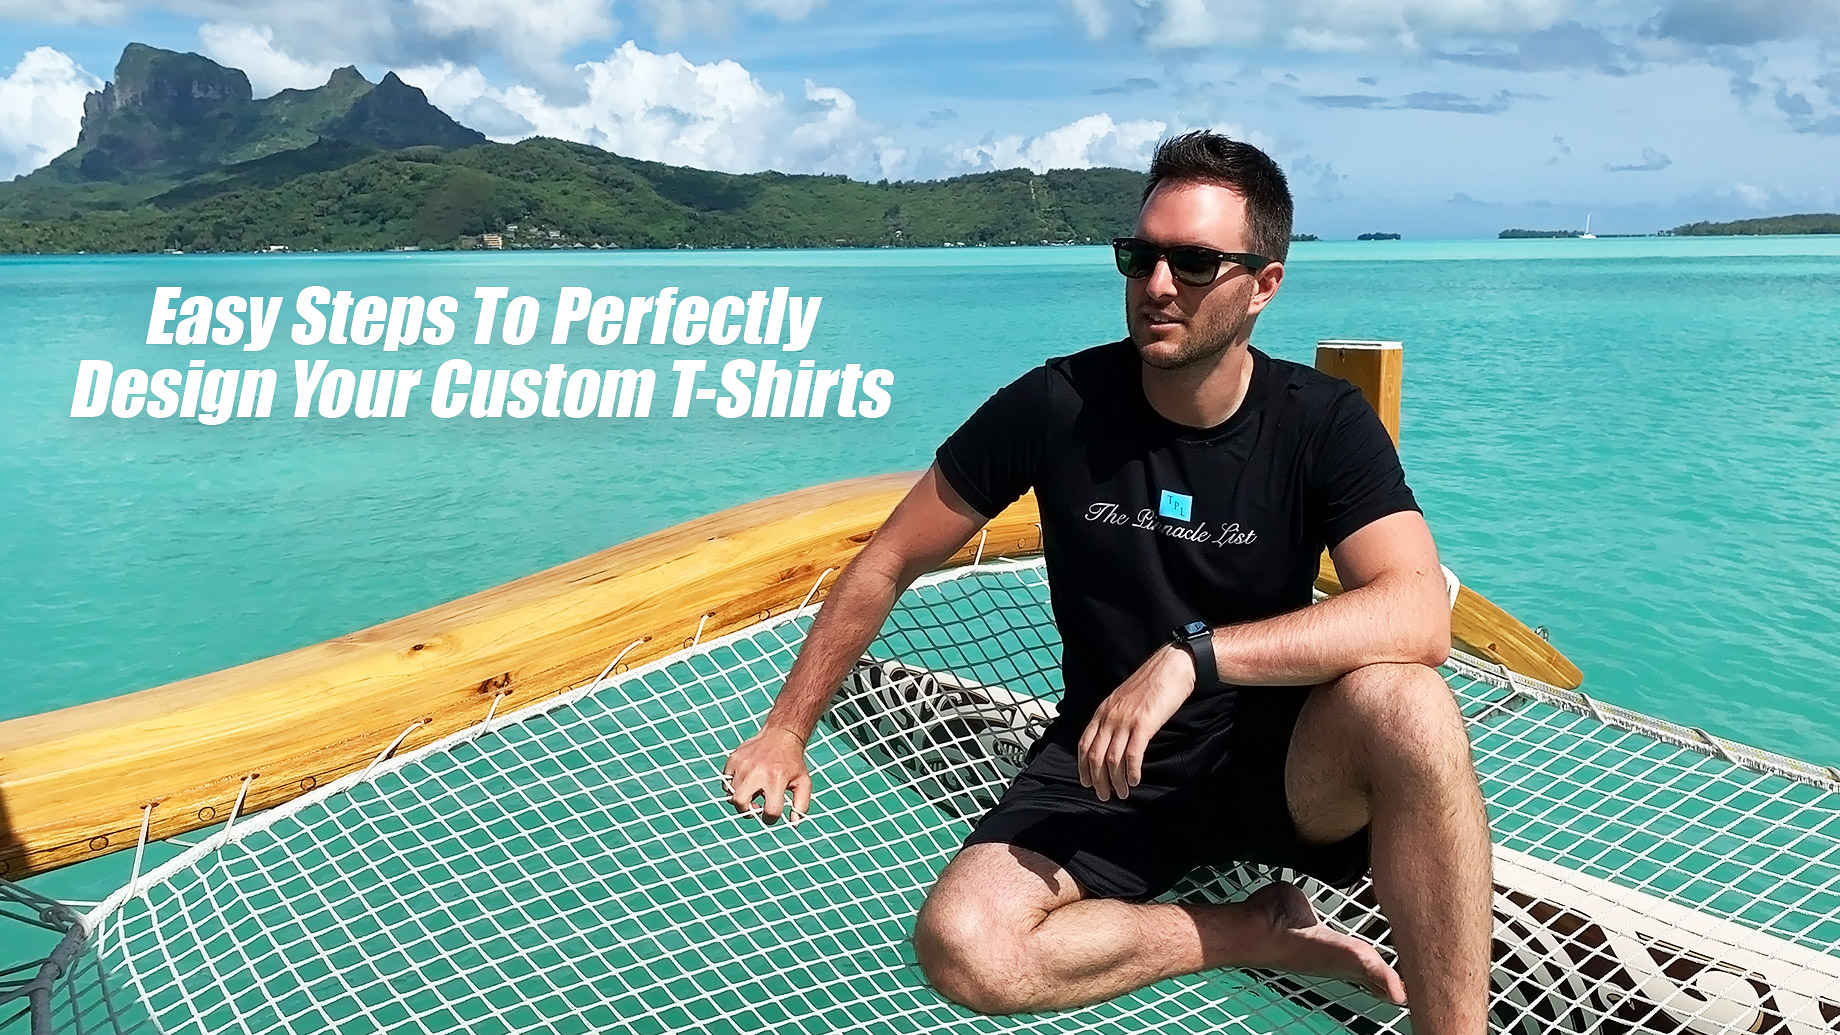 Easy Steps To Perfectly Design Your Custom T-Shirts - Marcus Anthony - The Pinnacle List